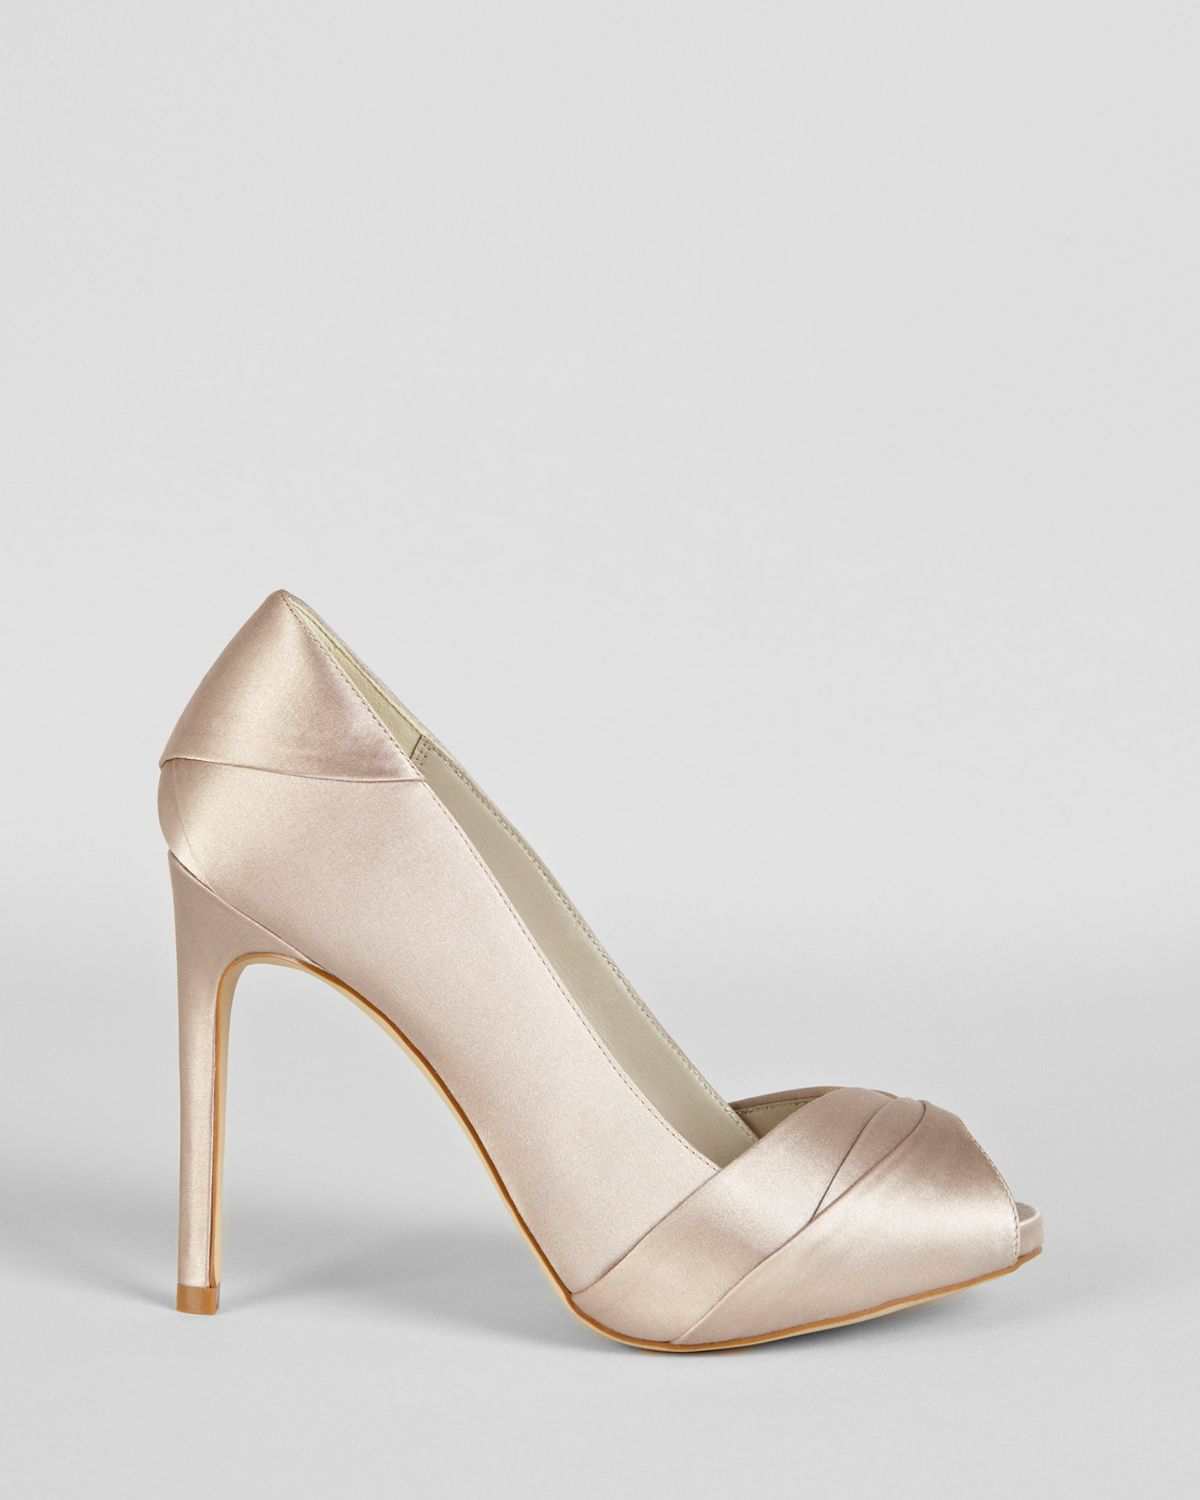 Karen Millen Satin Round-Toe Pumps discount fashion Style clearance really tumblr cheap top quality u6fBClt